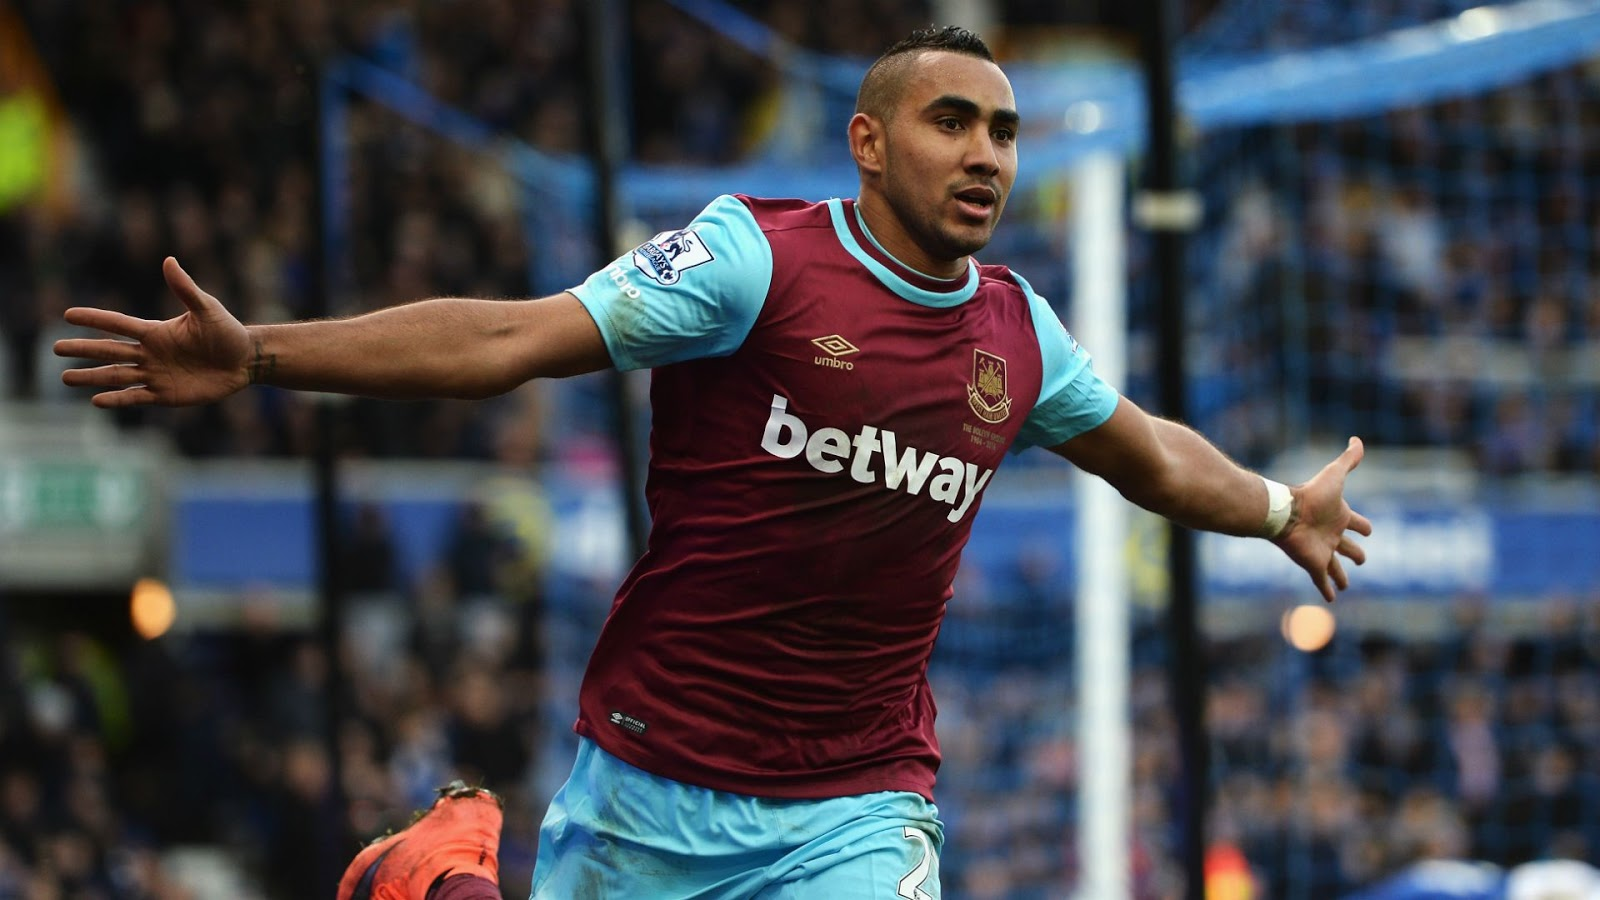 Dimitri Payet Full HD Wallpapers 1080p Free HD Wallpapers